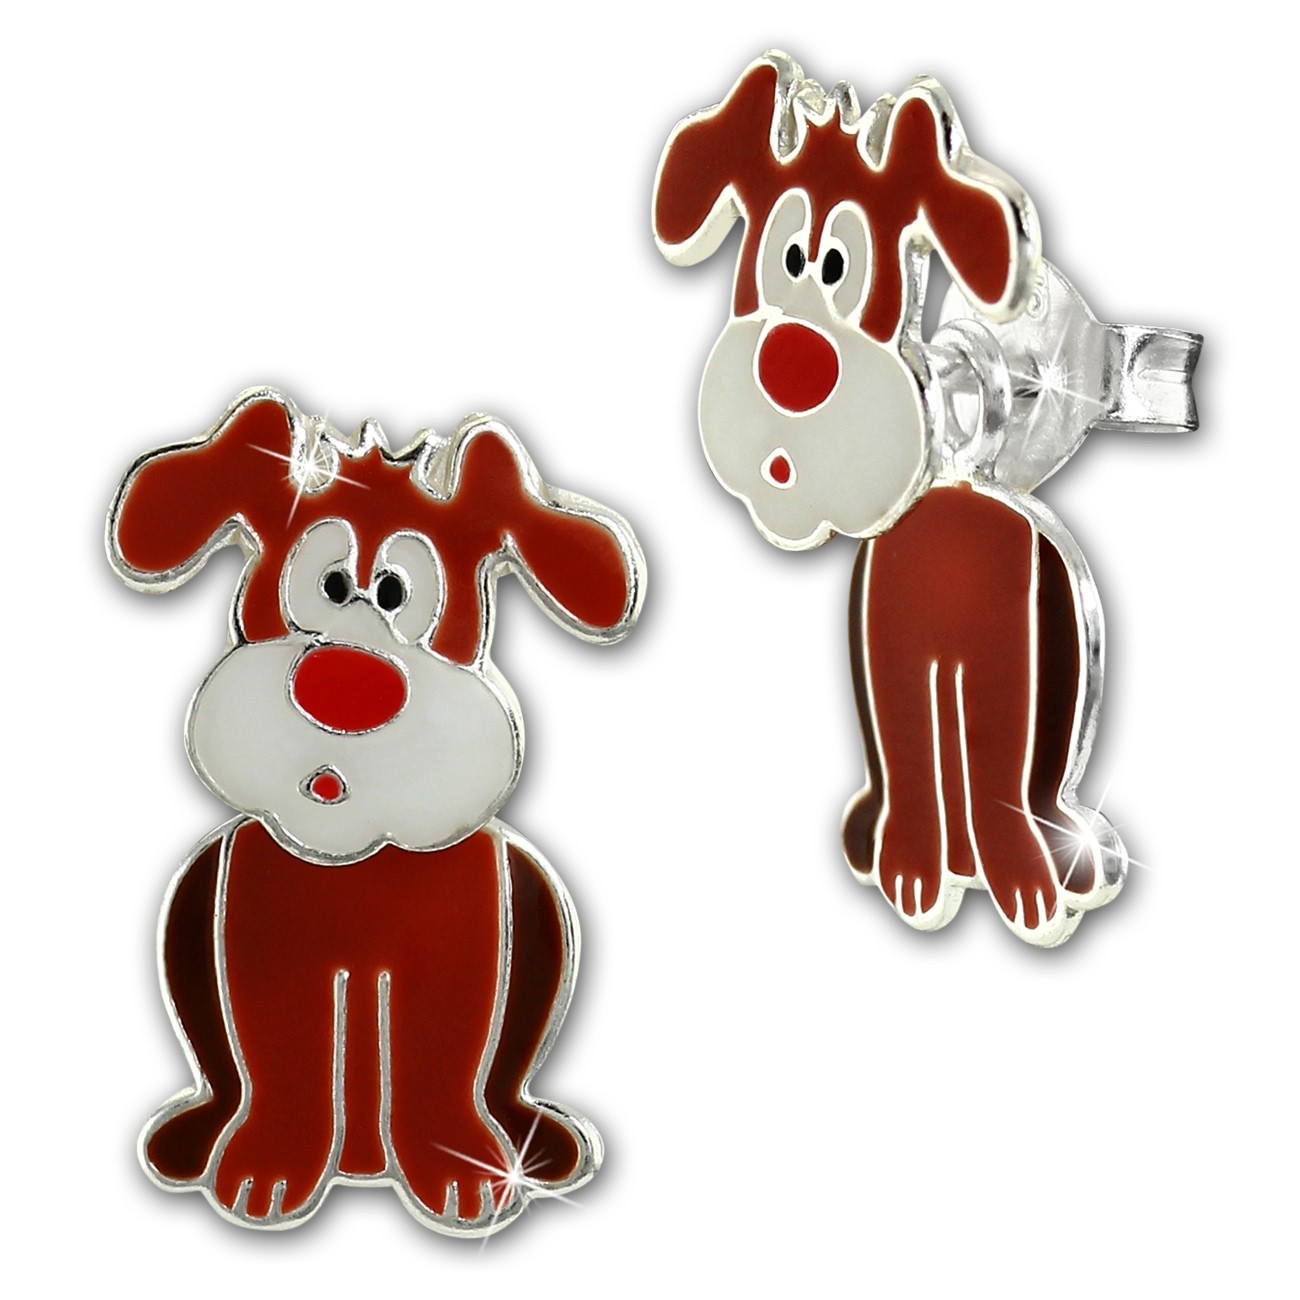 Kinder Ohrstecker Hund Dangle 925 Sterling Silber Kinderschmuck TW SDO8166N